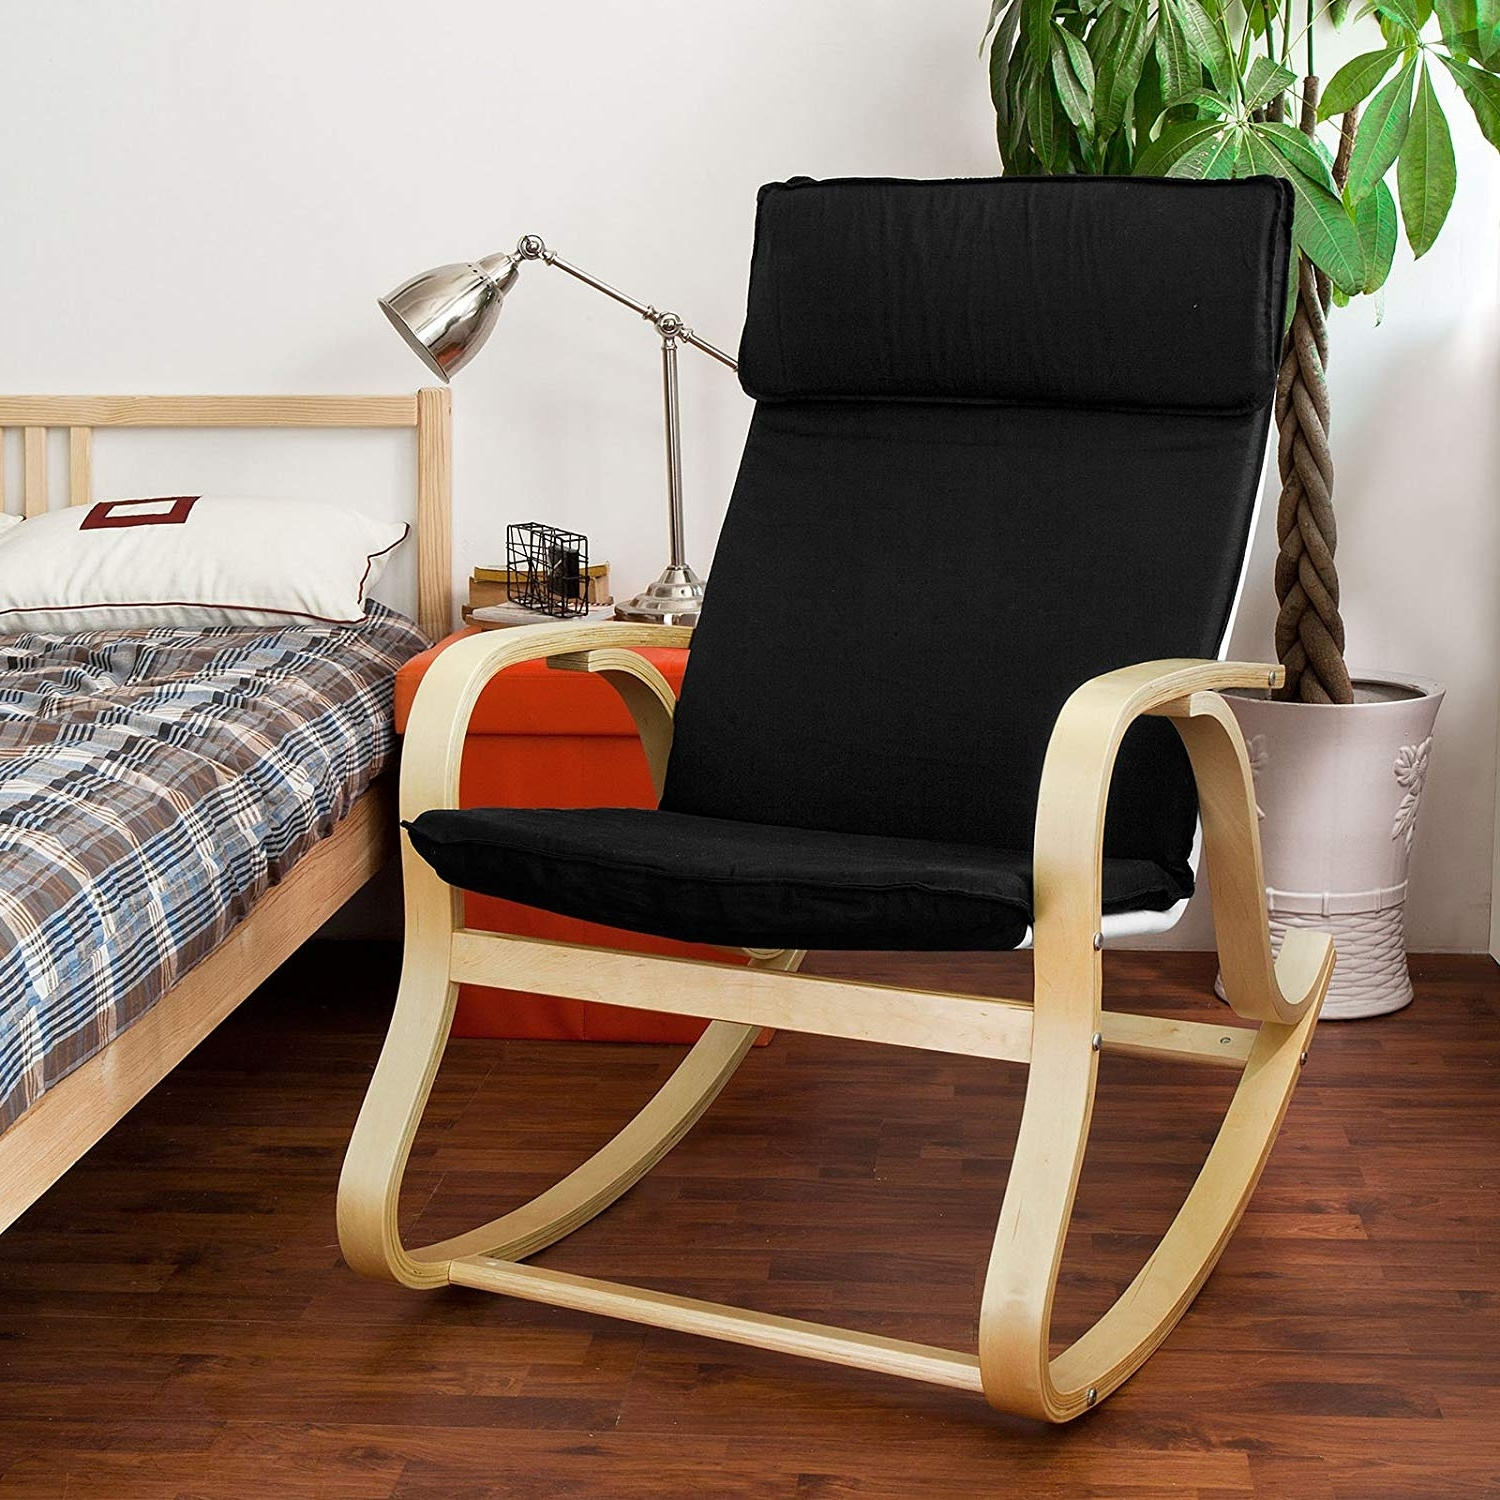 Well Known Rocking Chairs With Footrest In Amazon: Sobuy Wood Relaxing Rocking Chair,gliders,lounge Chair (View 13 of 15)